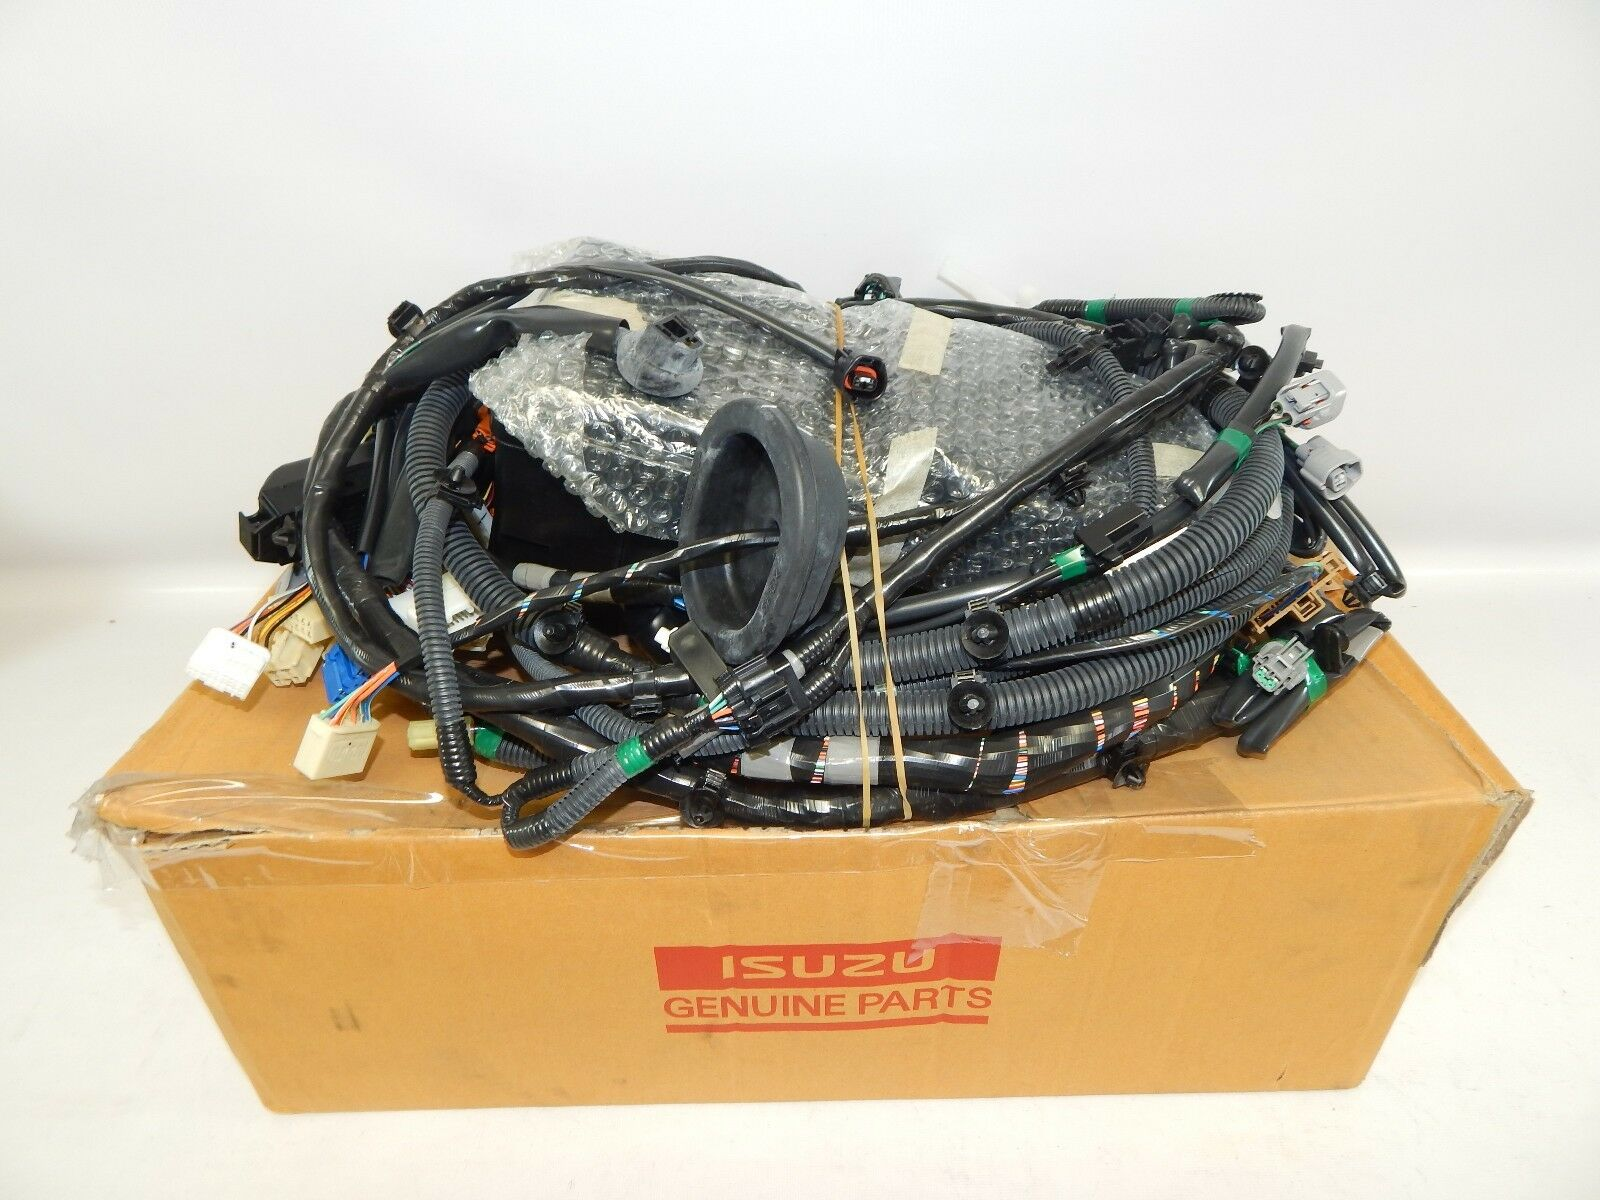 tc wiring harness wire diagrams bc rich mockingbird 2000 ford 5 0 on tc 2012 scion pt546 wiring diagram